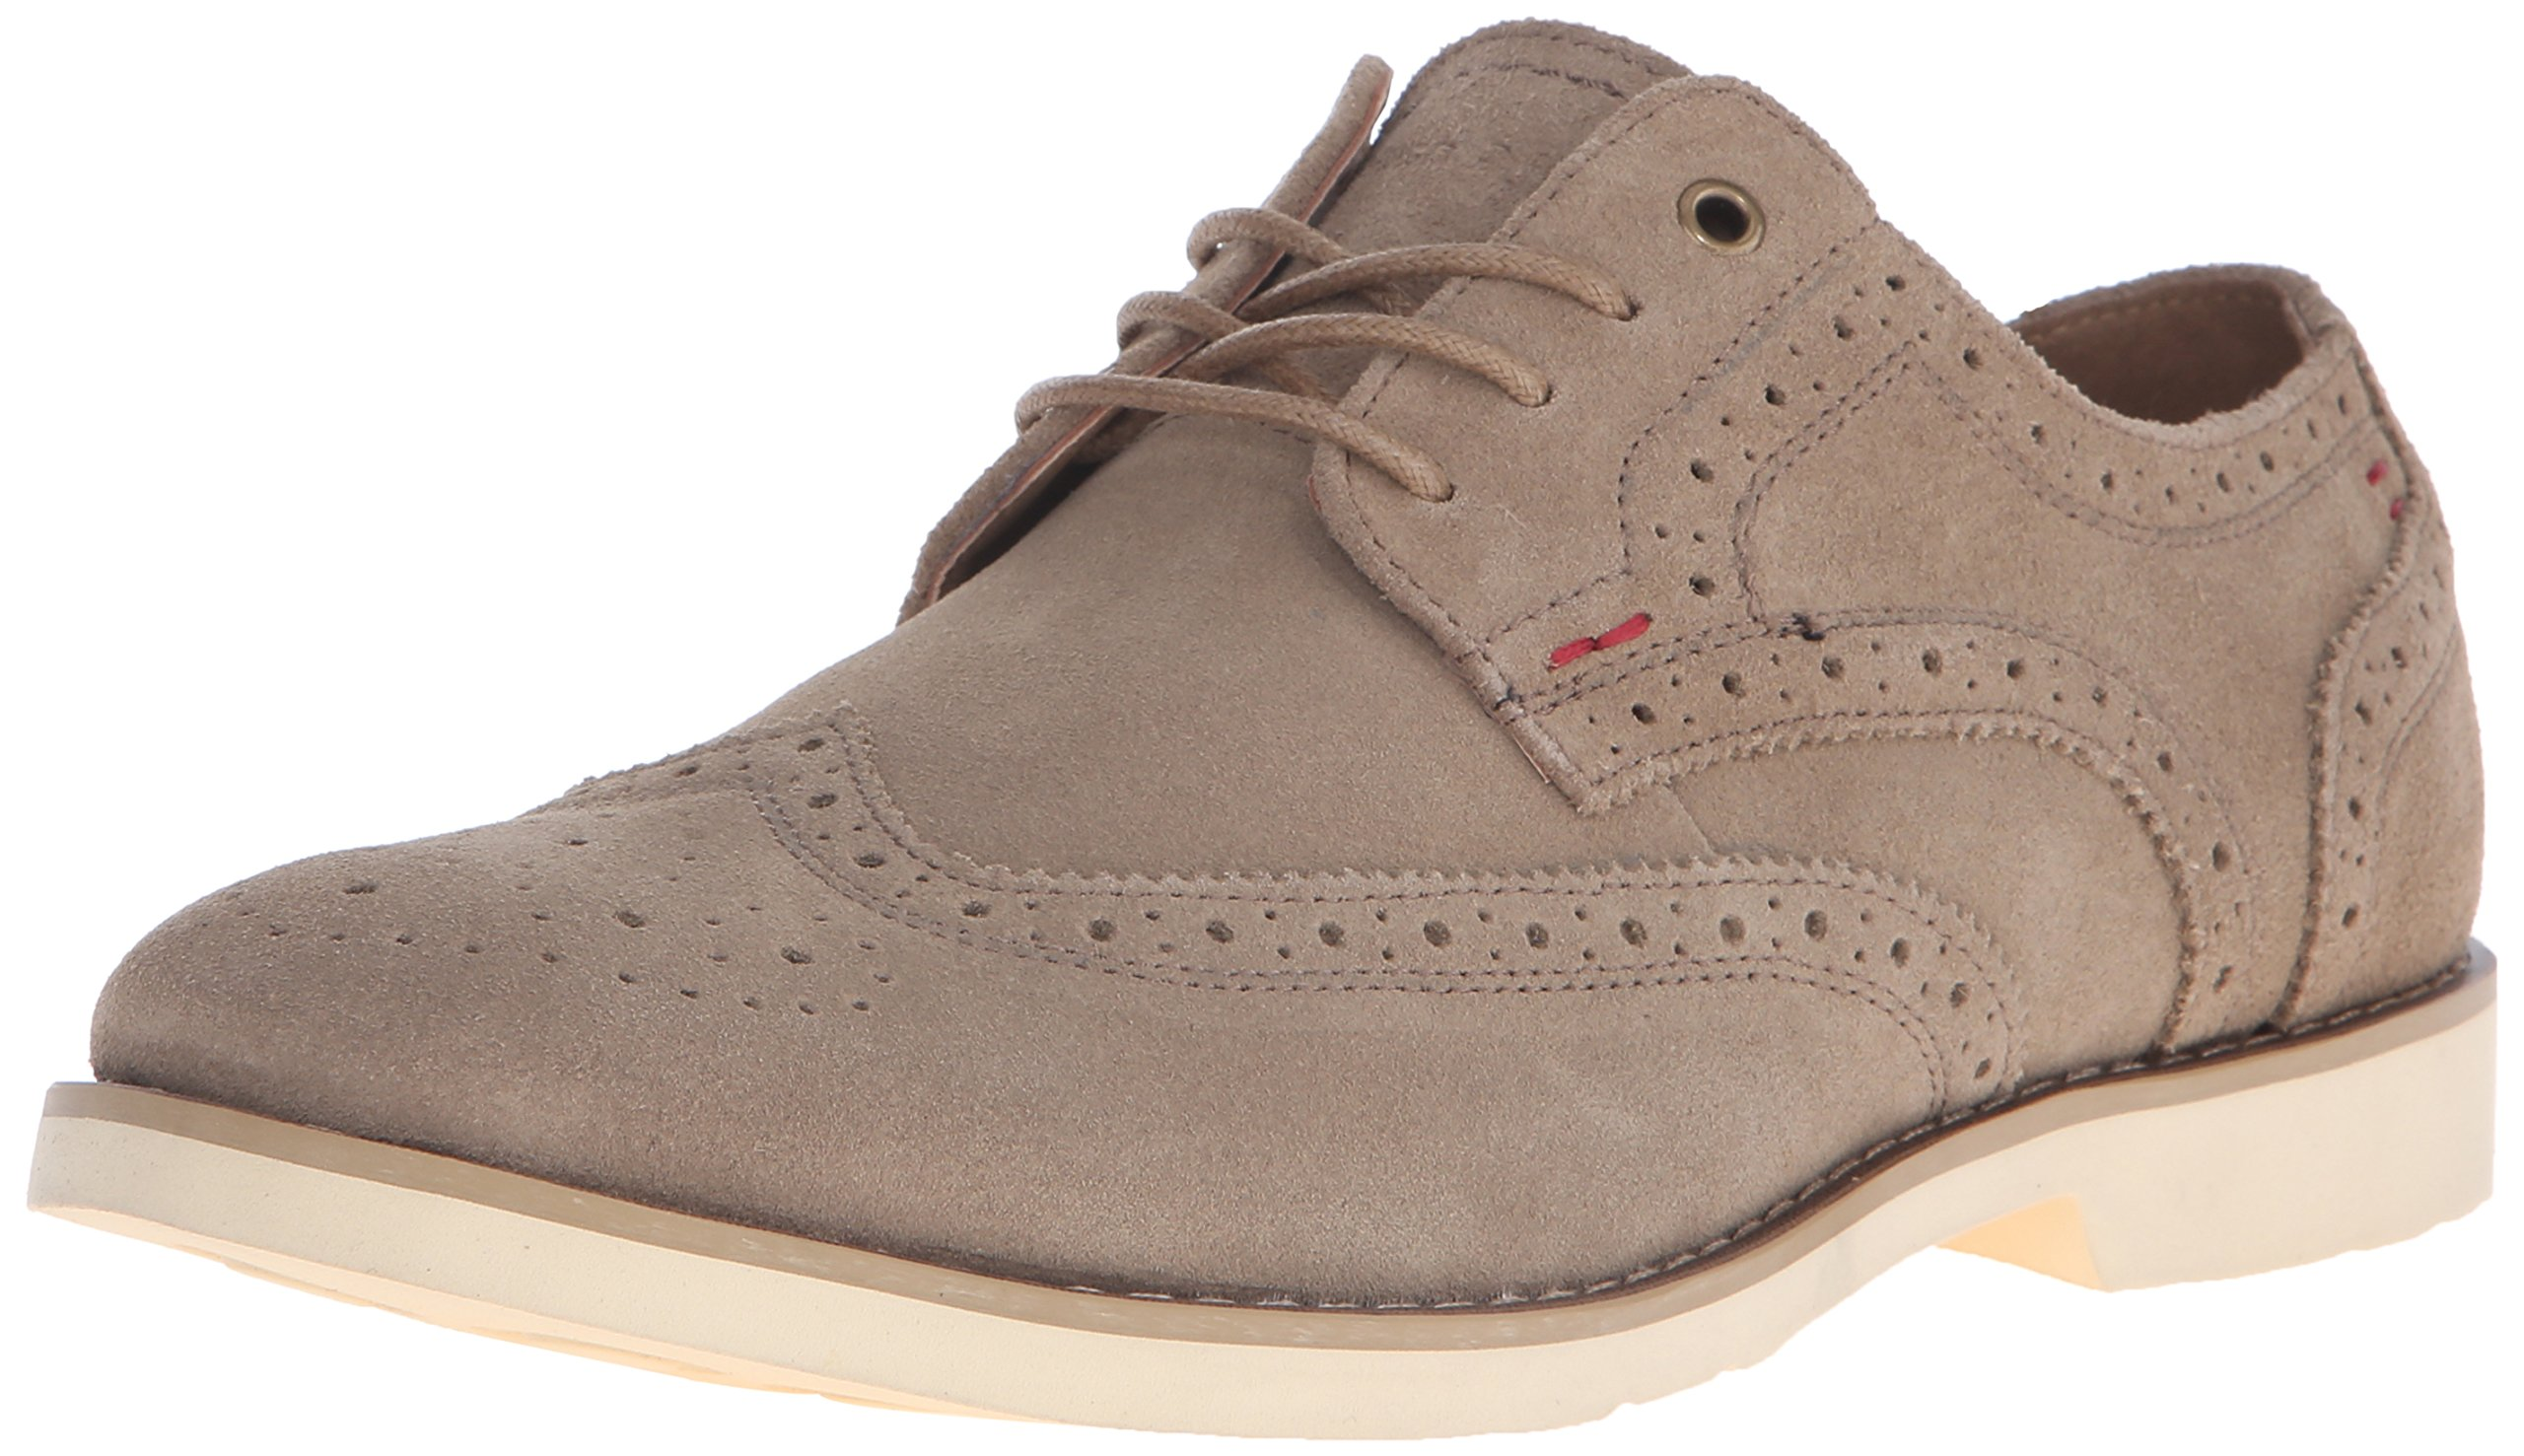 Hush Puppies Men's Fowler EZ Dress Oxford, Taupe Suede, 10.5 W US